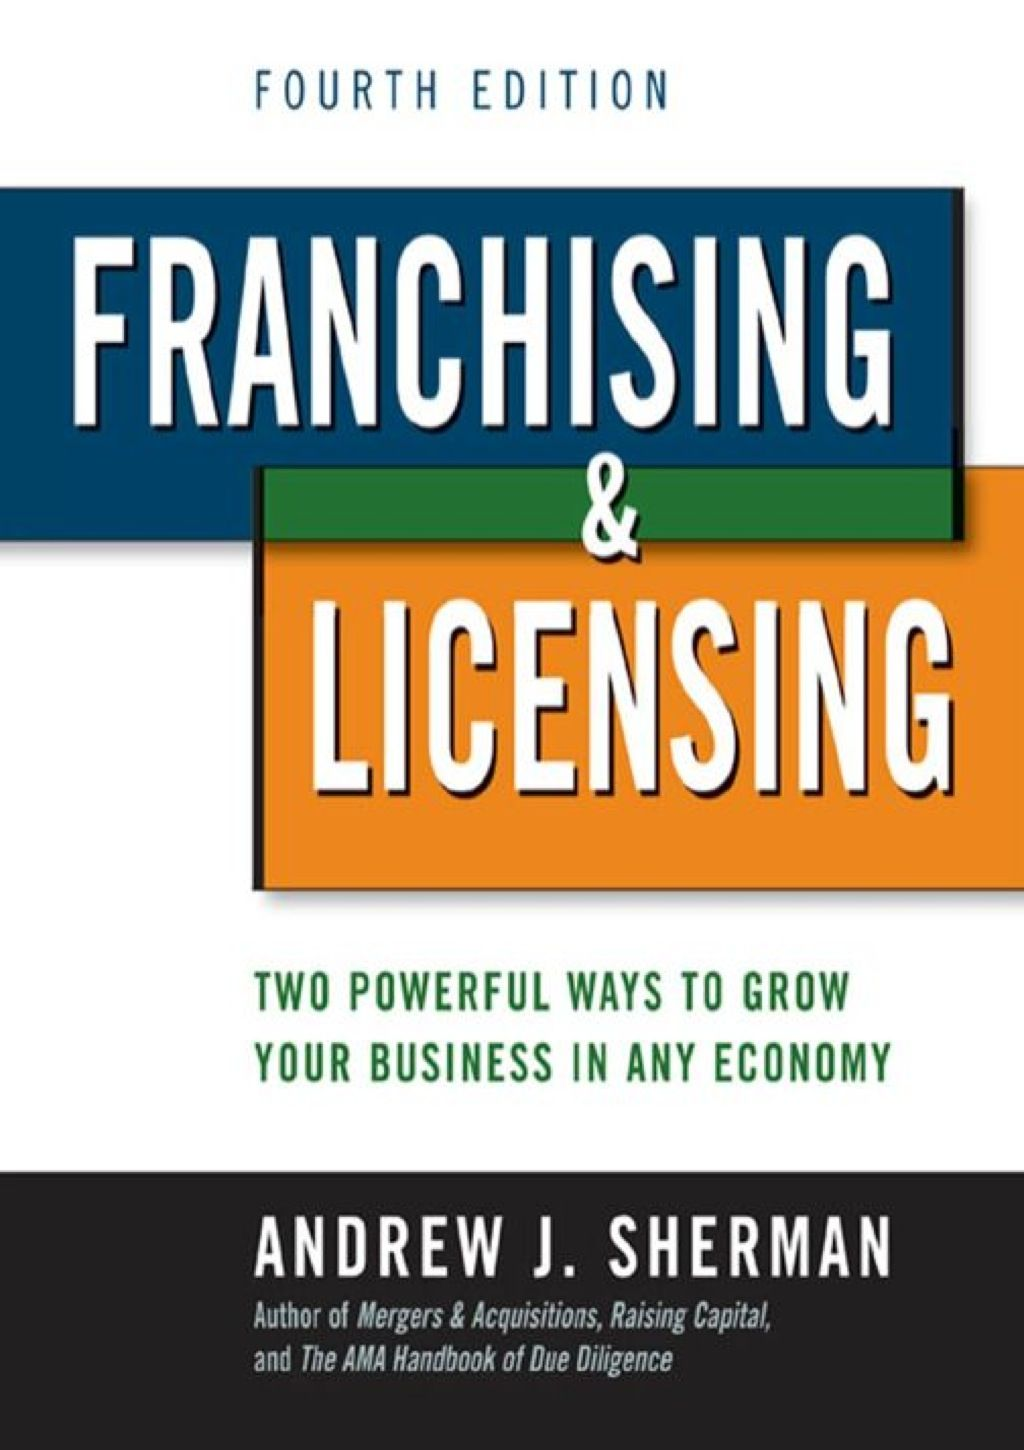 Franchising And Licensing Ebook Growing Your Business